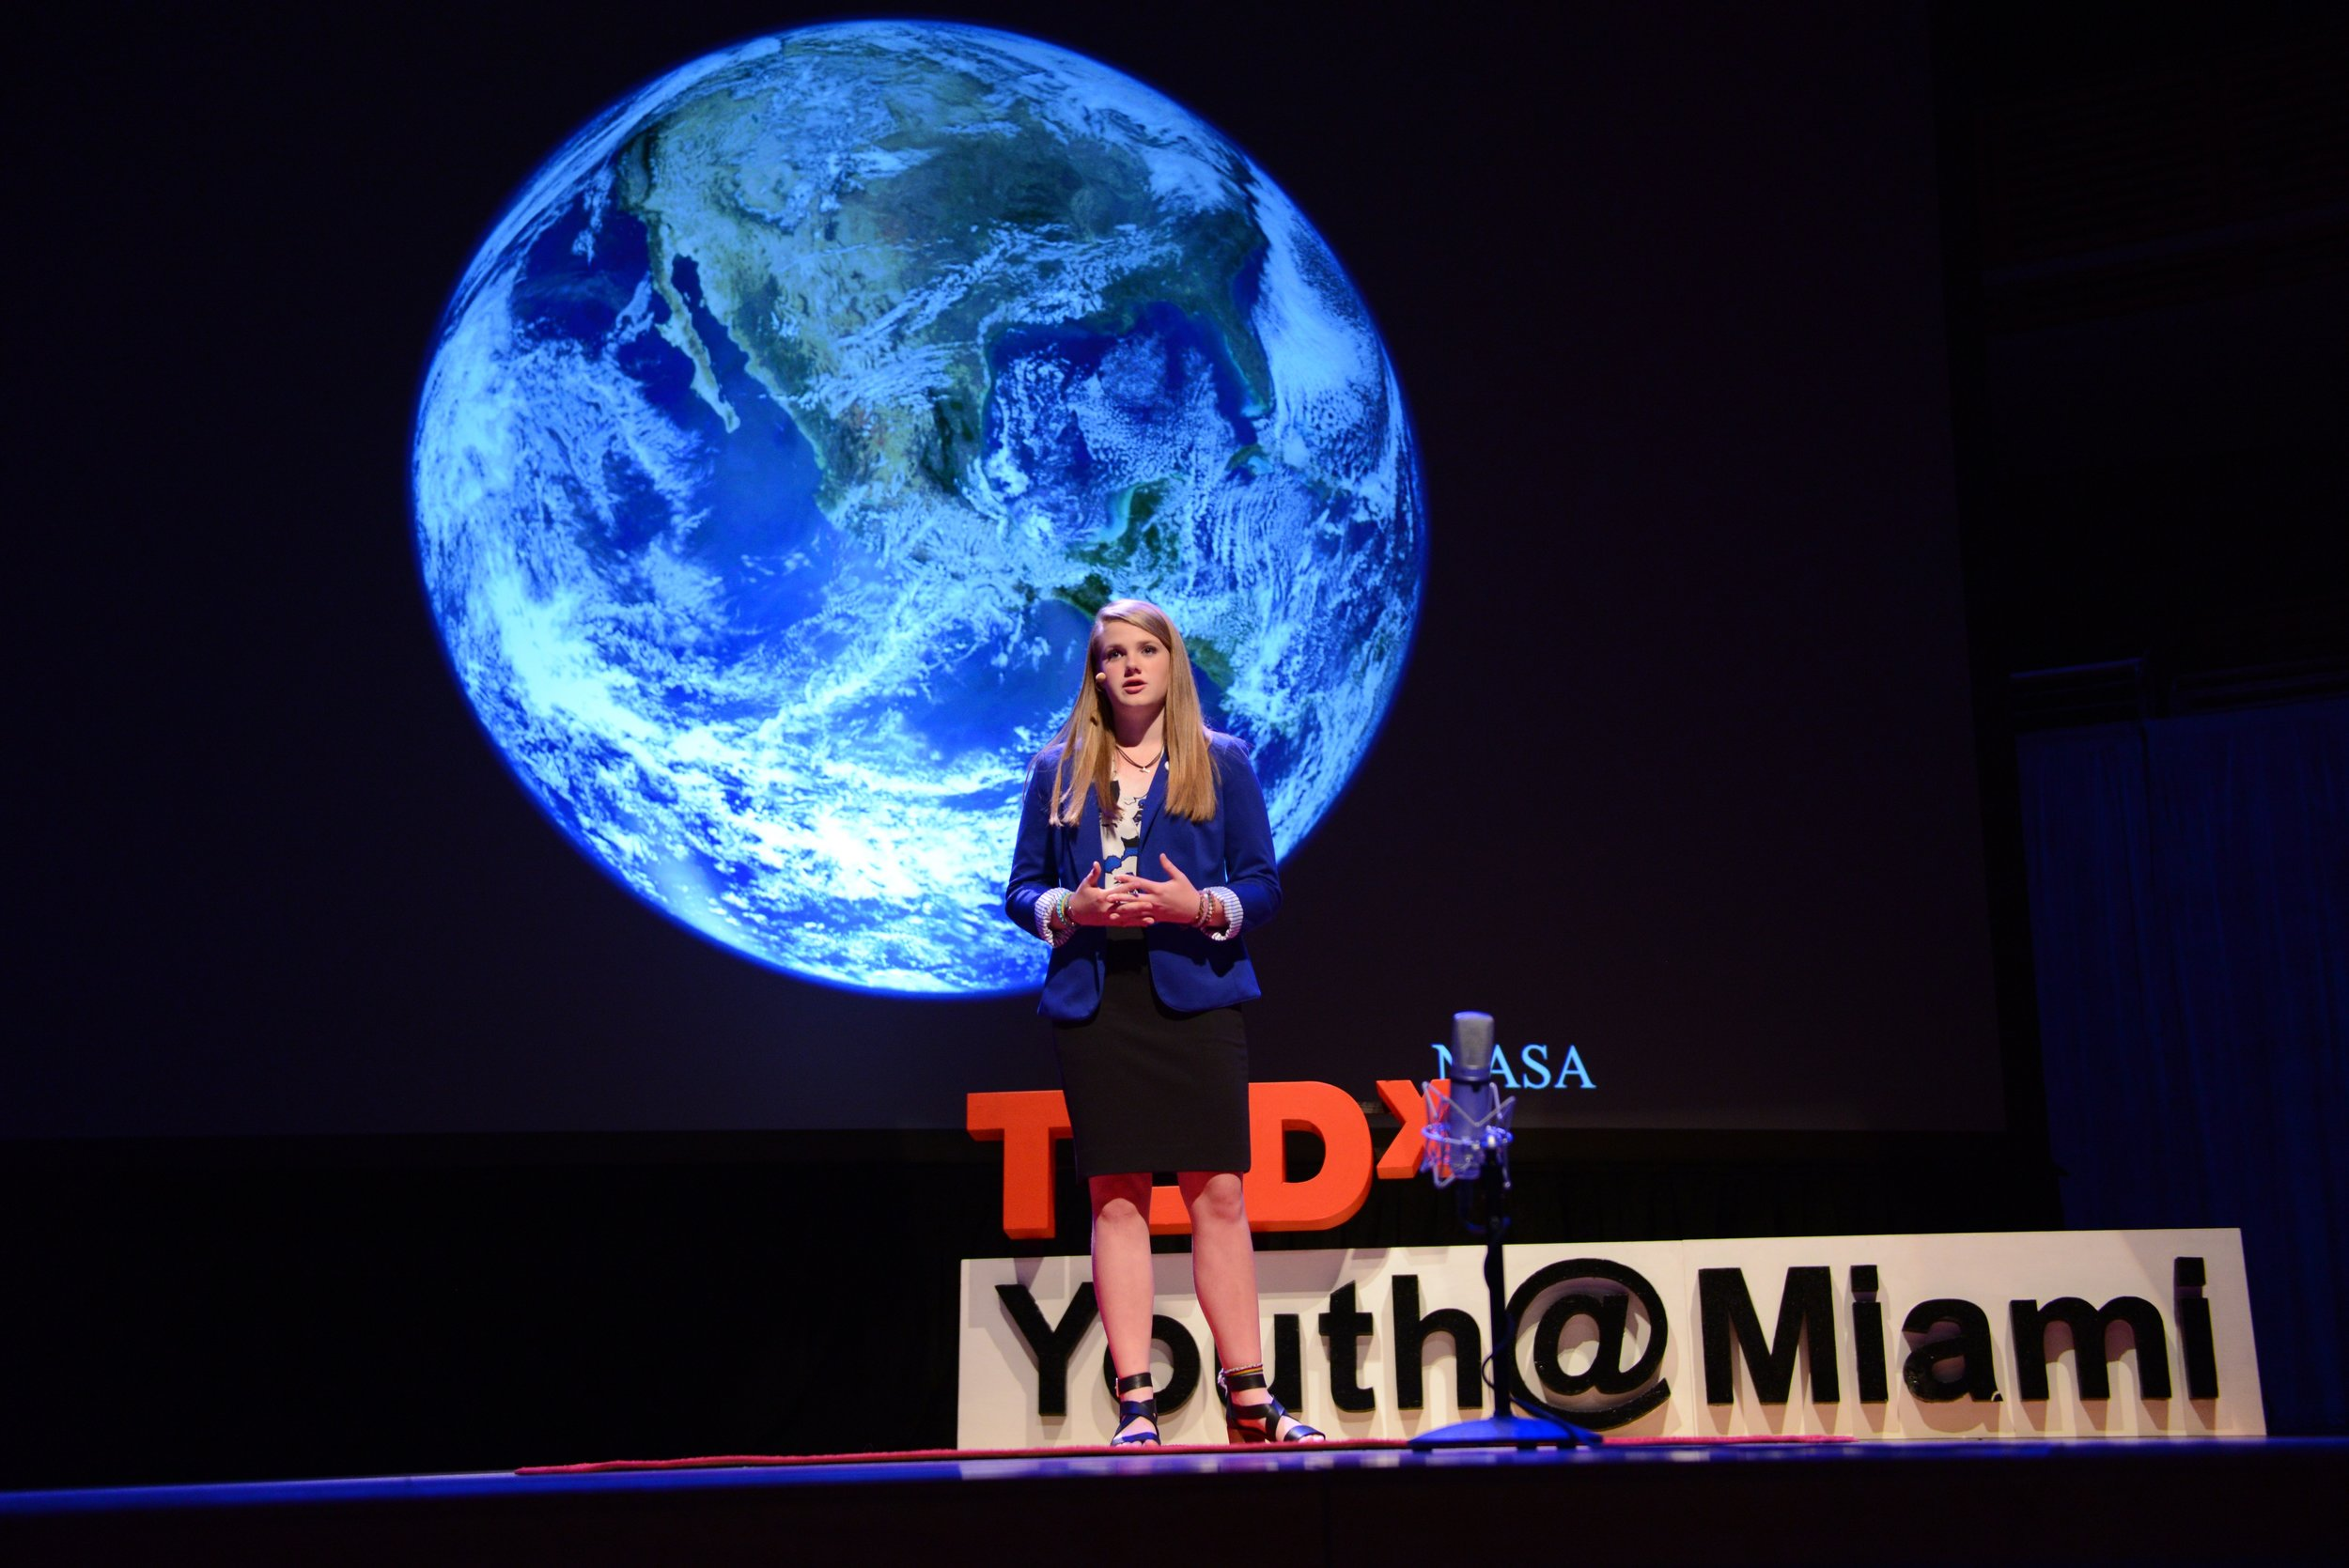 Delaney TedxYouth Talk pic.jpg